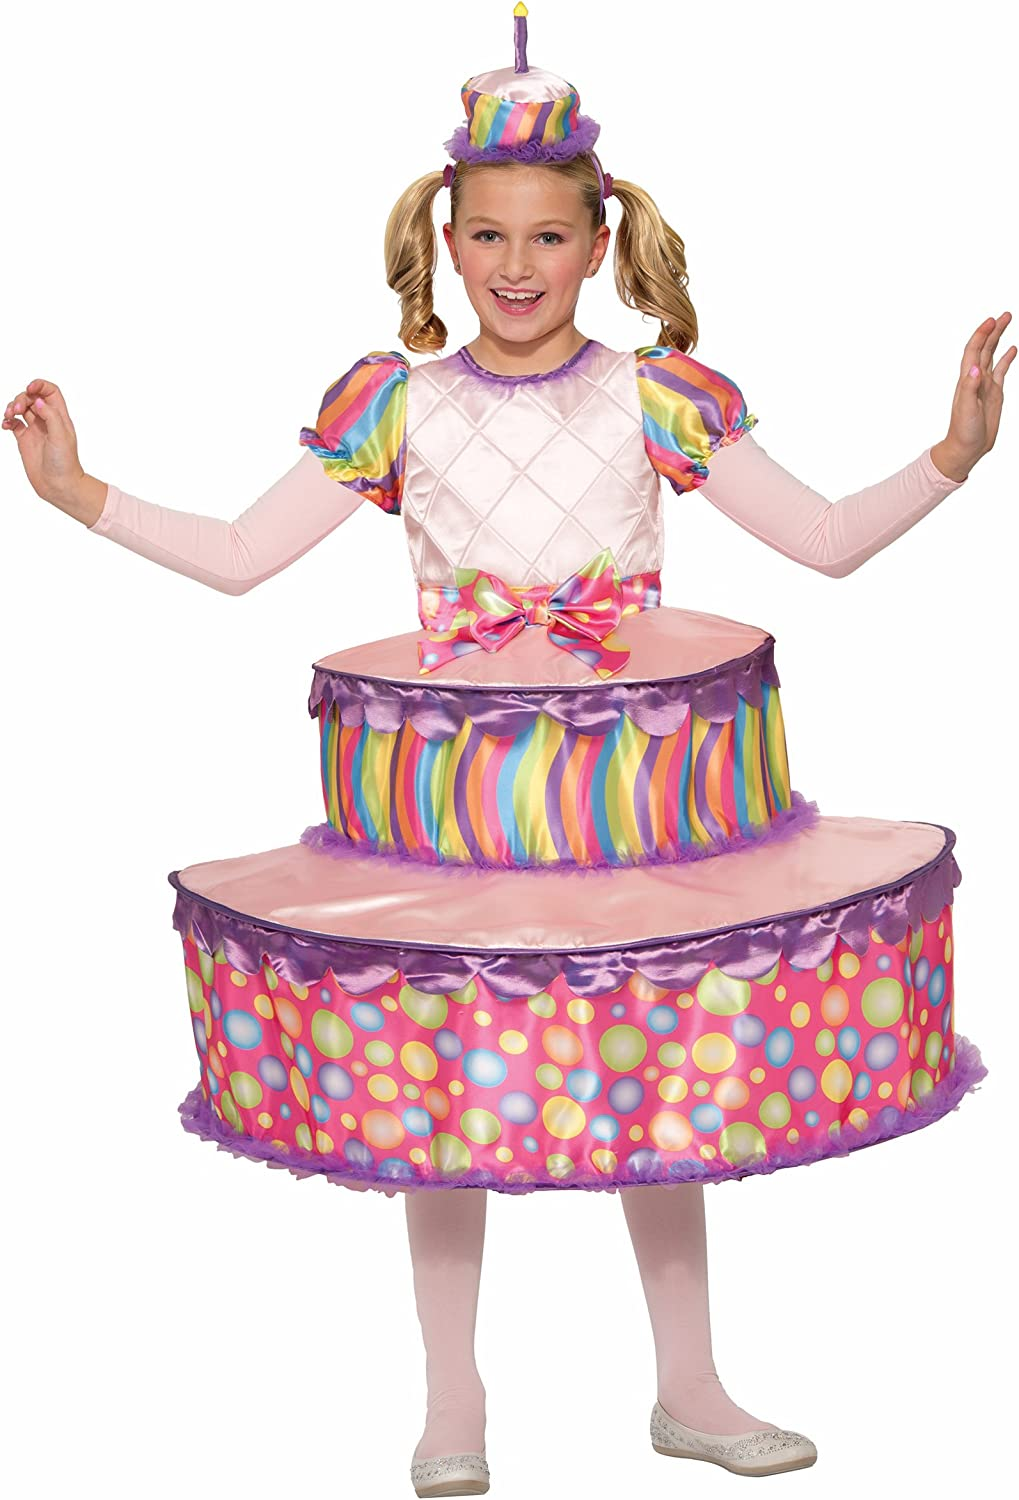 Superb Amazon Com Forum Novelties Kids Birthday Cake Costume Pink Funny Birthday Cards Online Barepcheapnameinfo